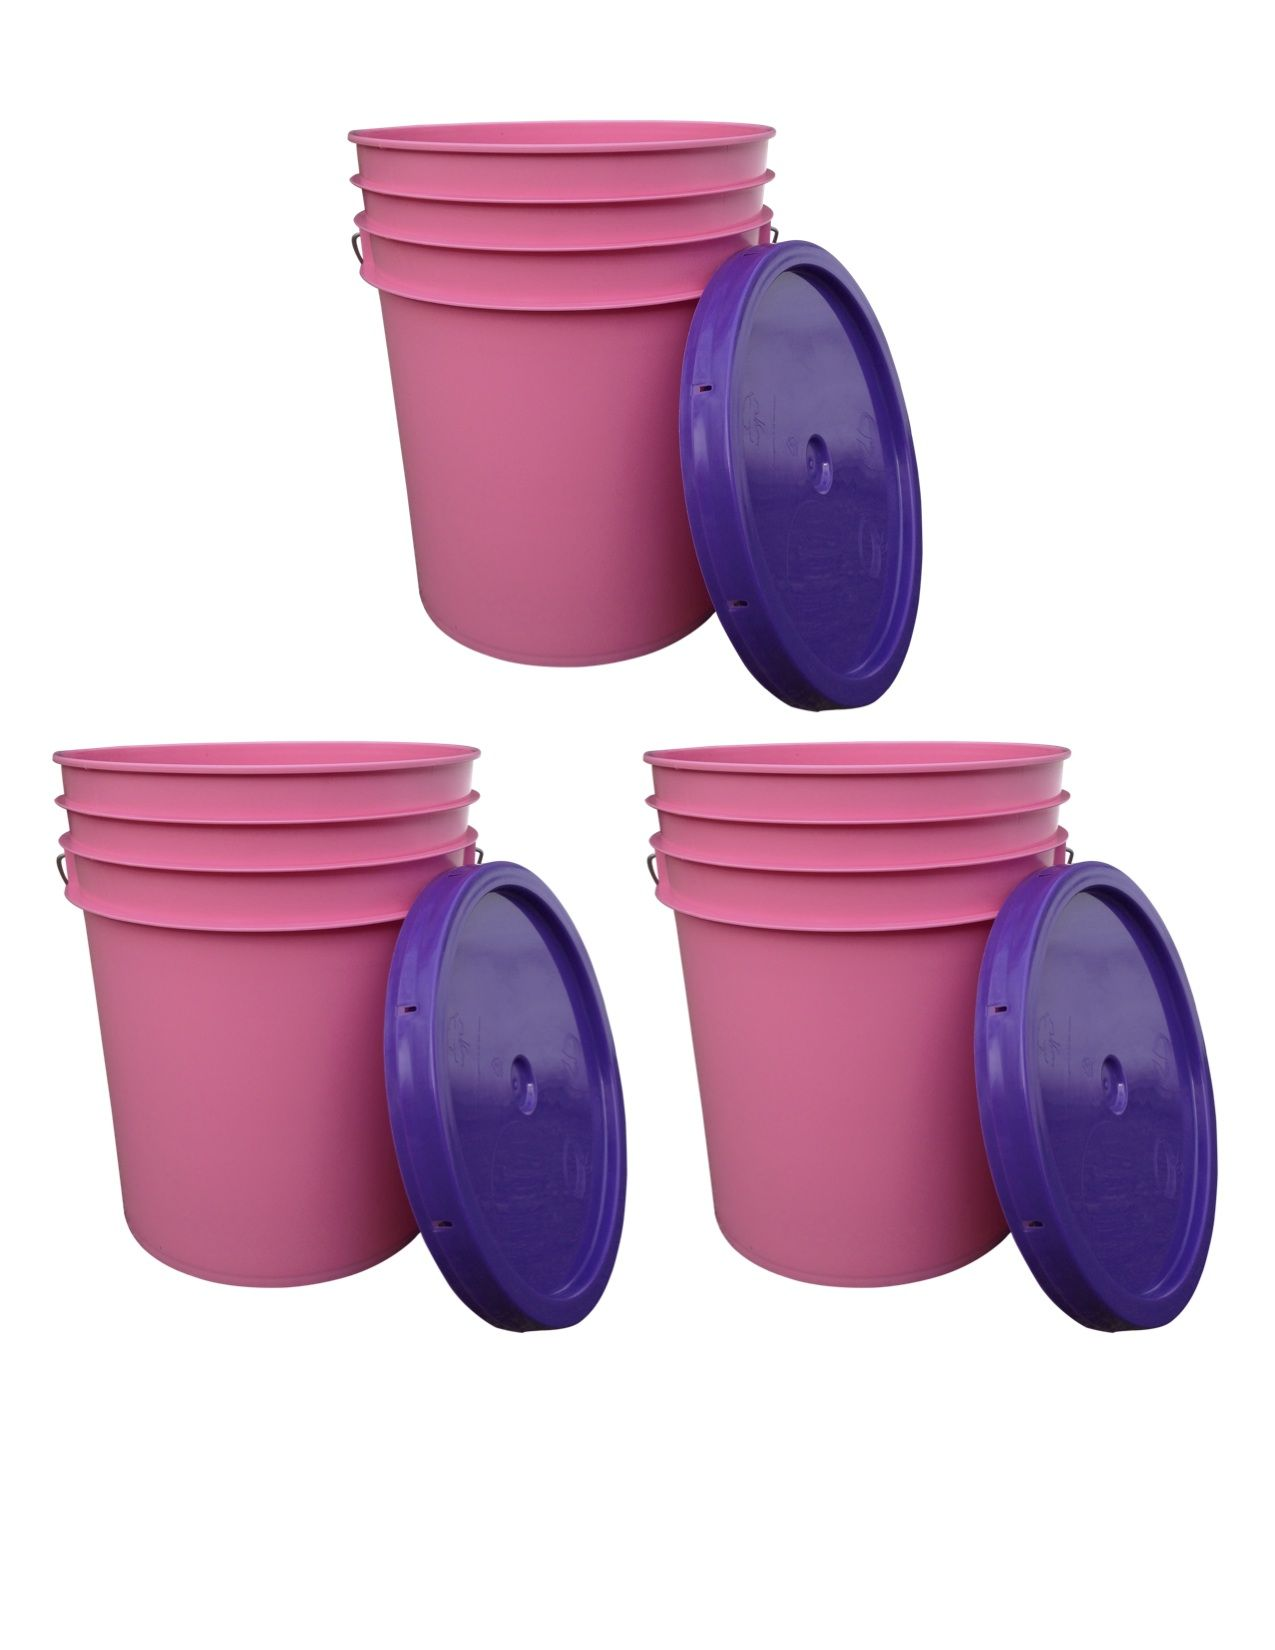 Who Knew Buckets Came In My Favorite Colors Pink And Purple I Use